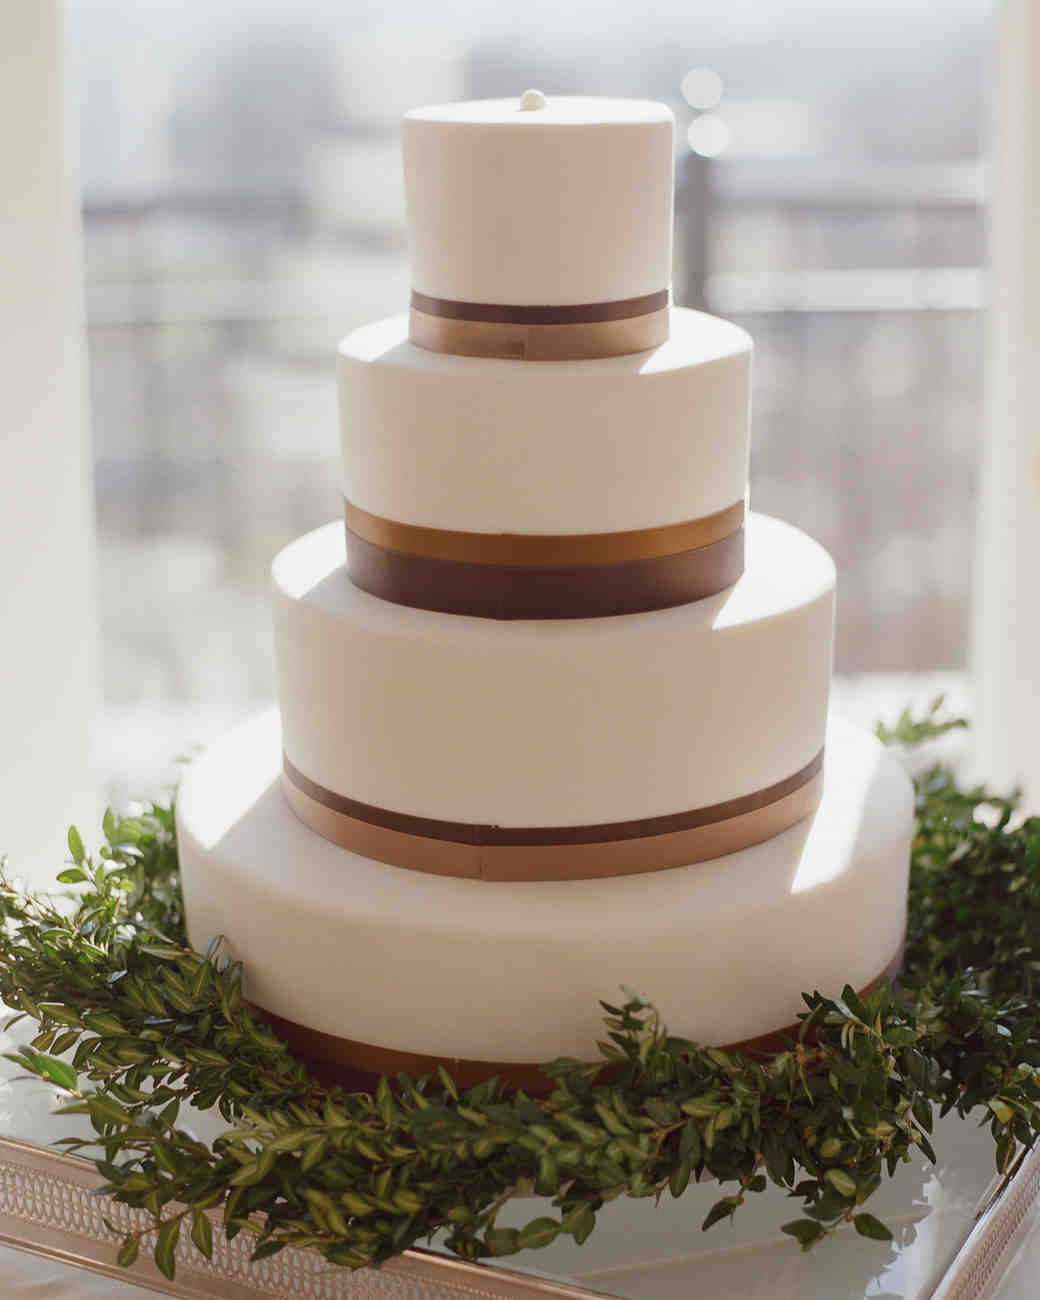 40 Simple Wedding Cakes That Are Gorgeously Understated   Martha     40 Simple Wedding Cakes That Are Gorgeously Understated   Martha Stewart  Weddings